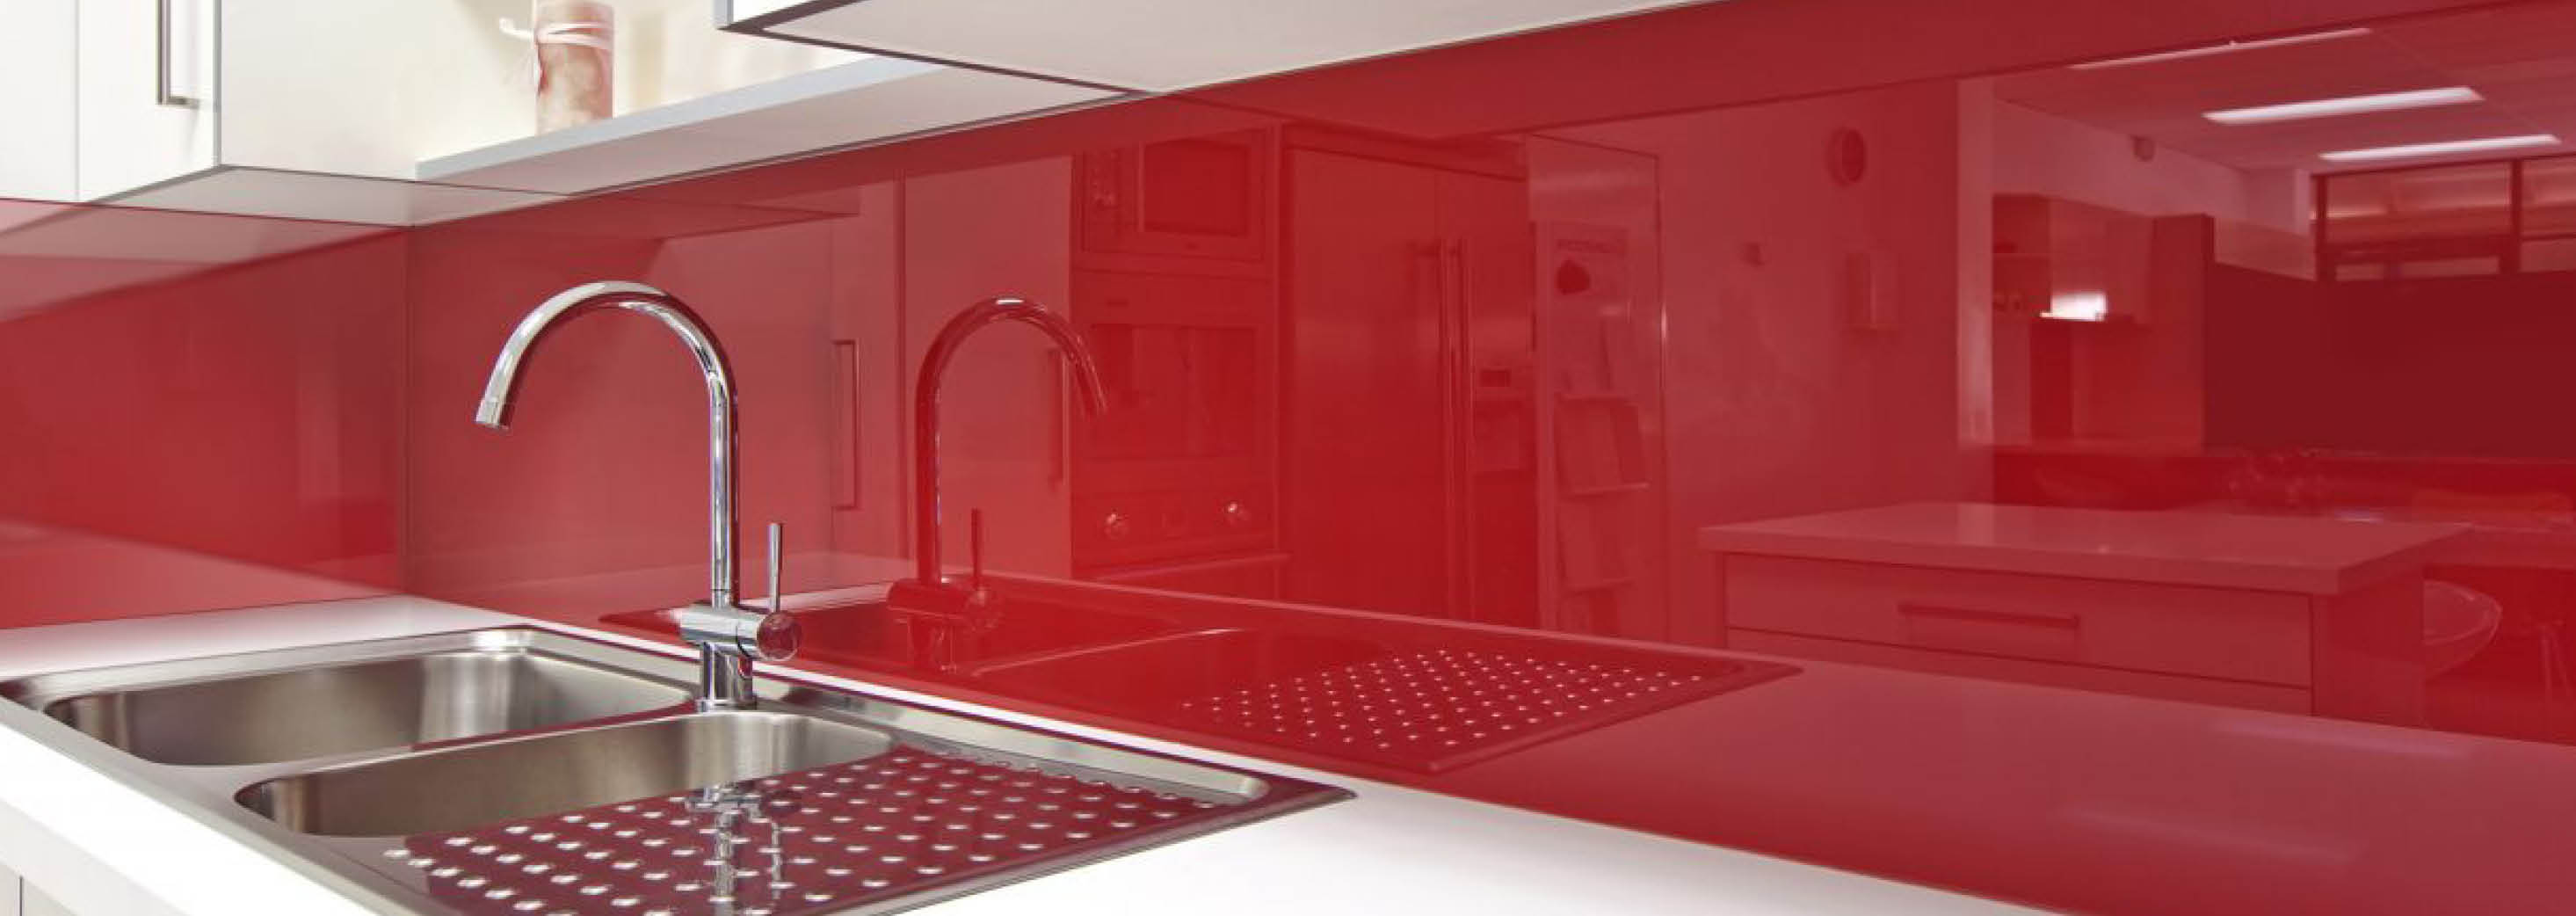 Plexiglas 174 Acrylic Sheets The World Leader In Acrylic